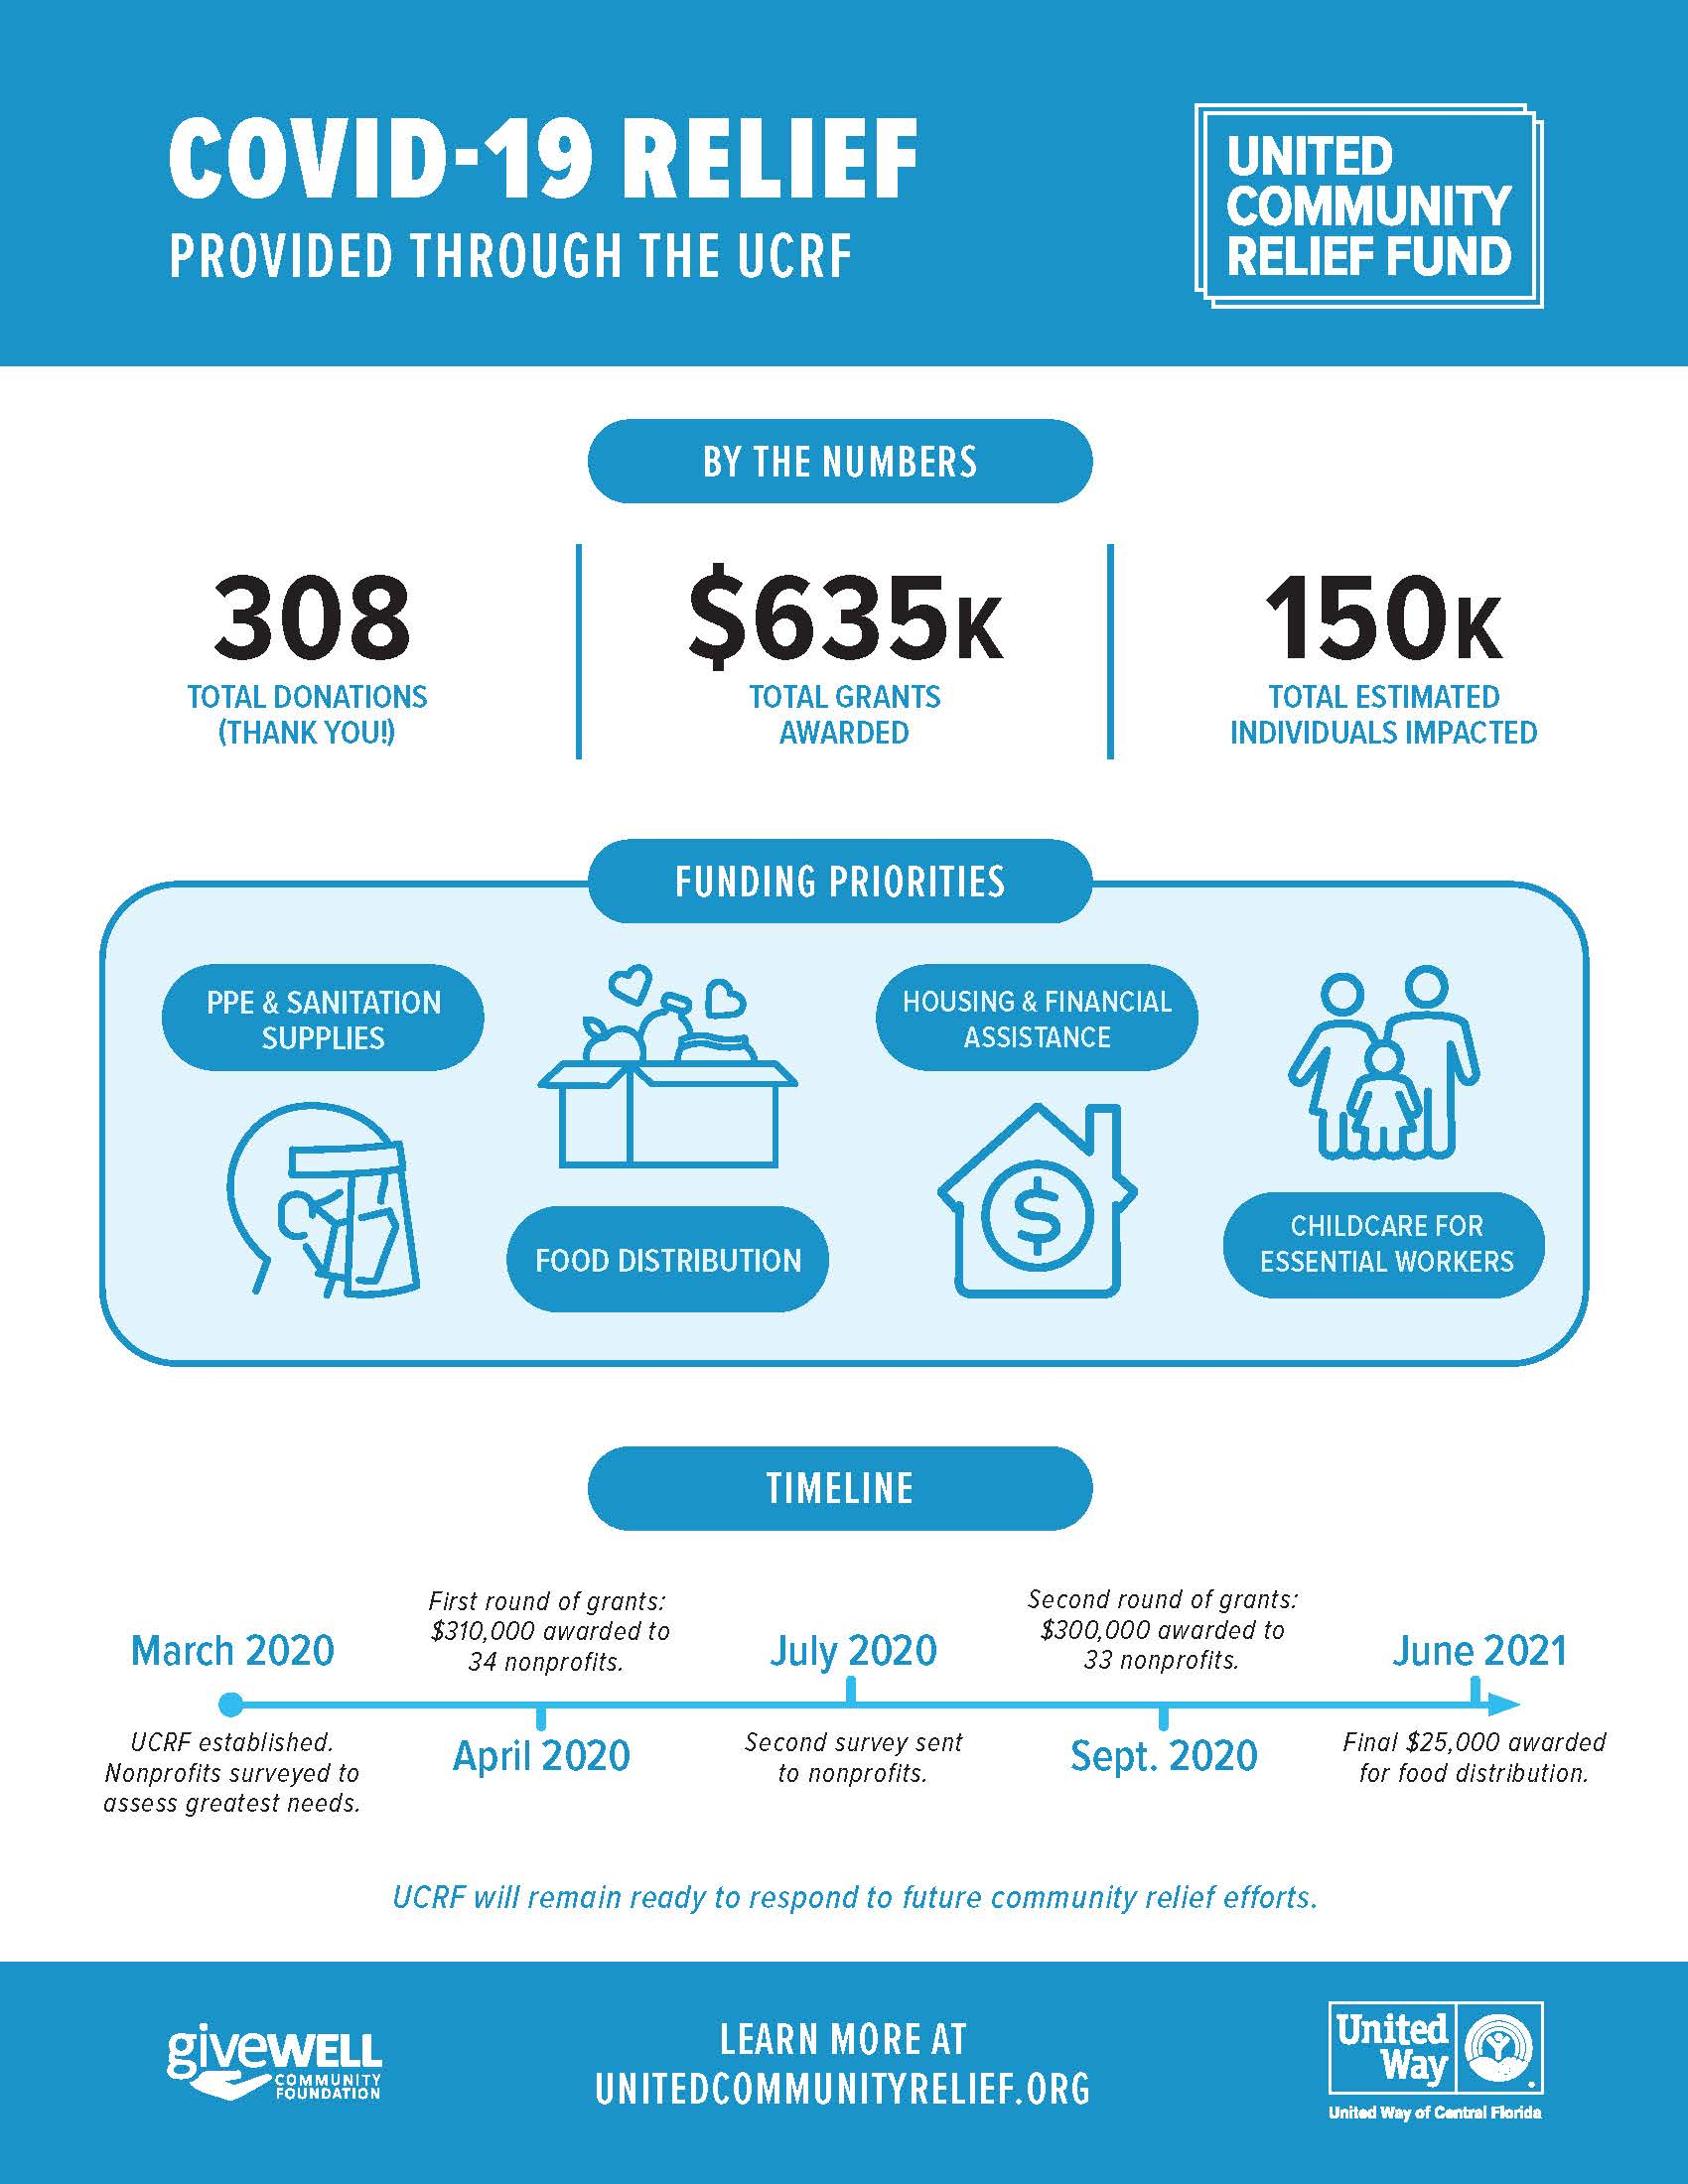 Infographic with data from the United Community Relief Fund